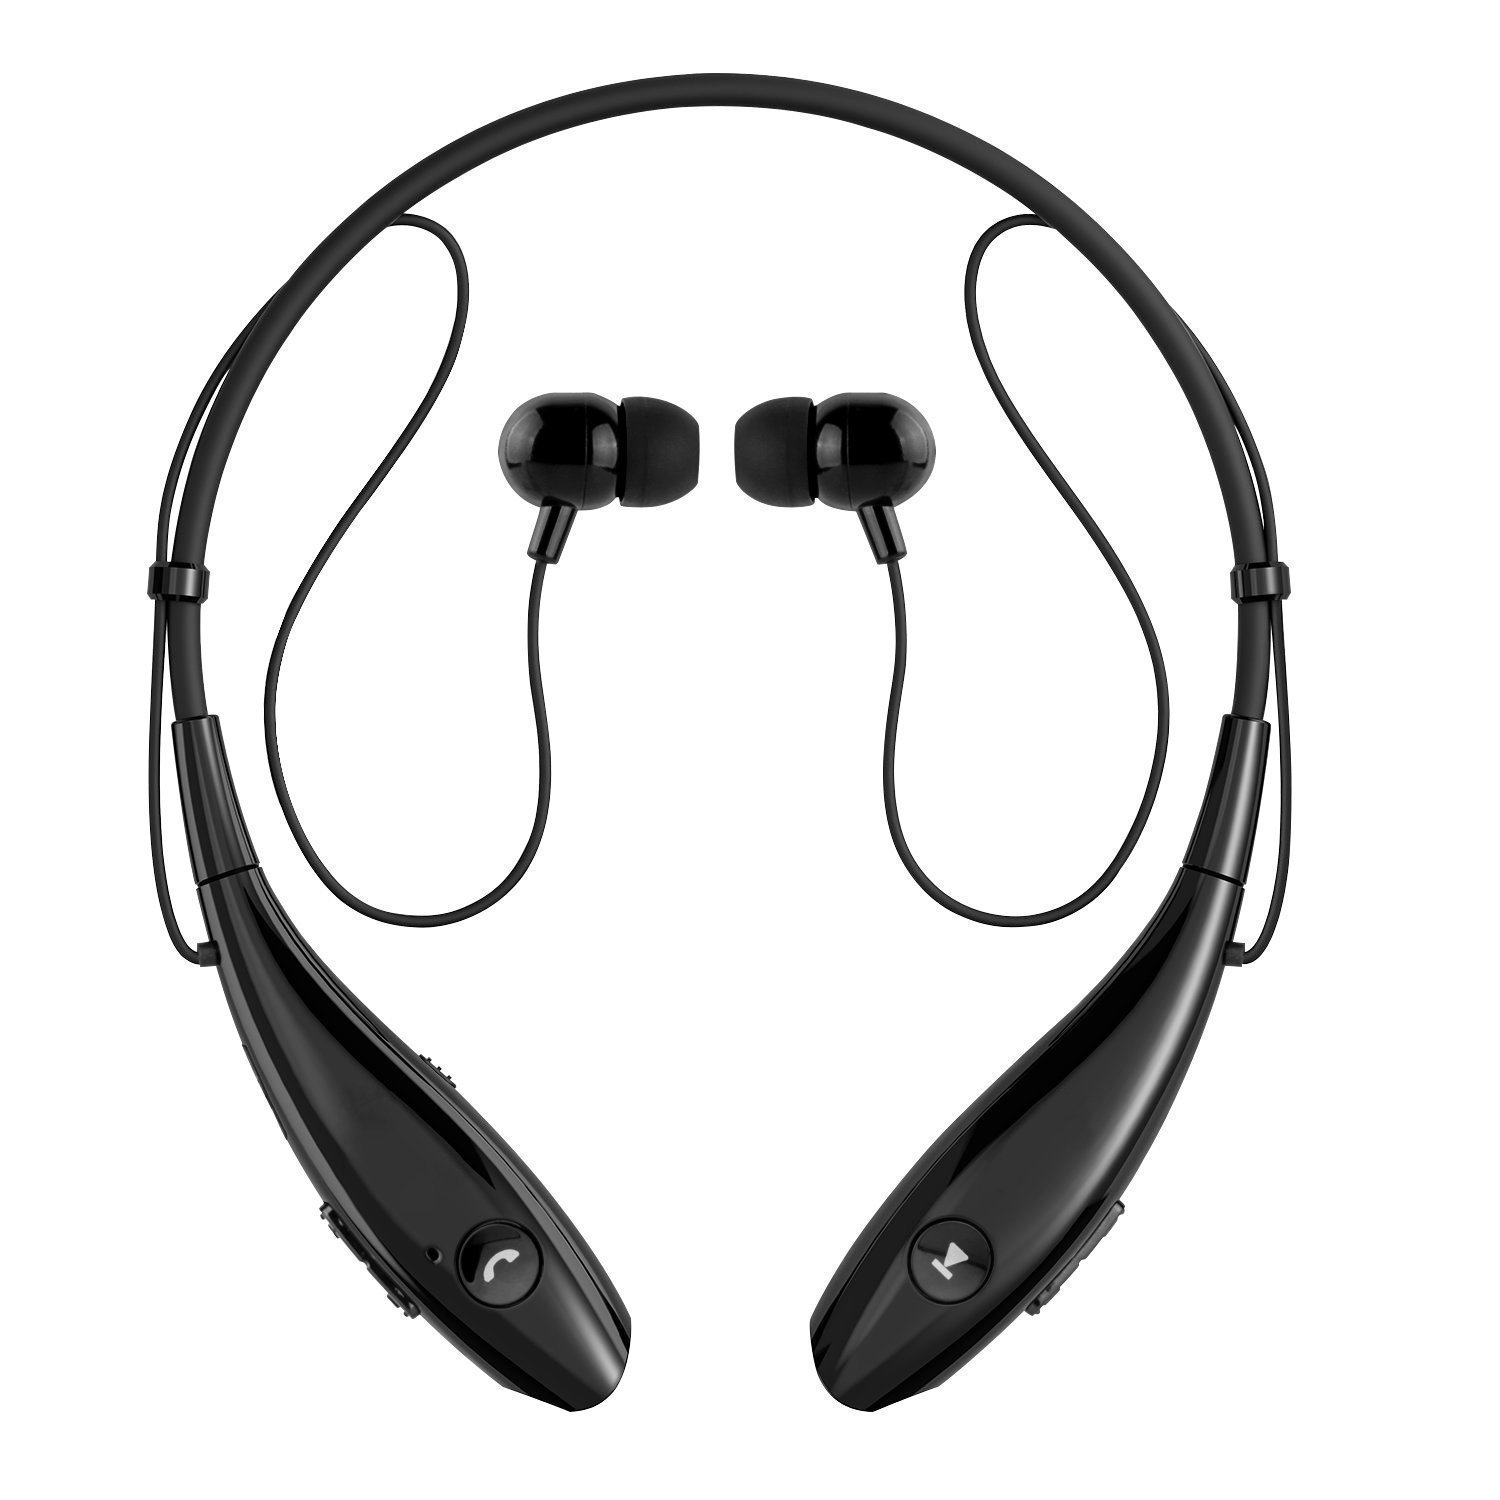 Amazon.com: SoundPEATS Bluetooth Headphones Wireless Headset Stereo  Neckband Sport Earbuds with Mic (10 Hours Play Time, Bluetooth 4.1, ...